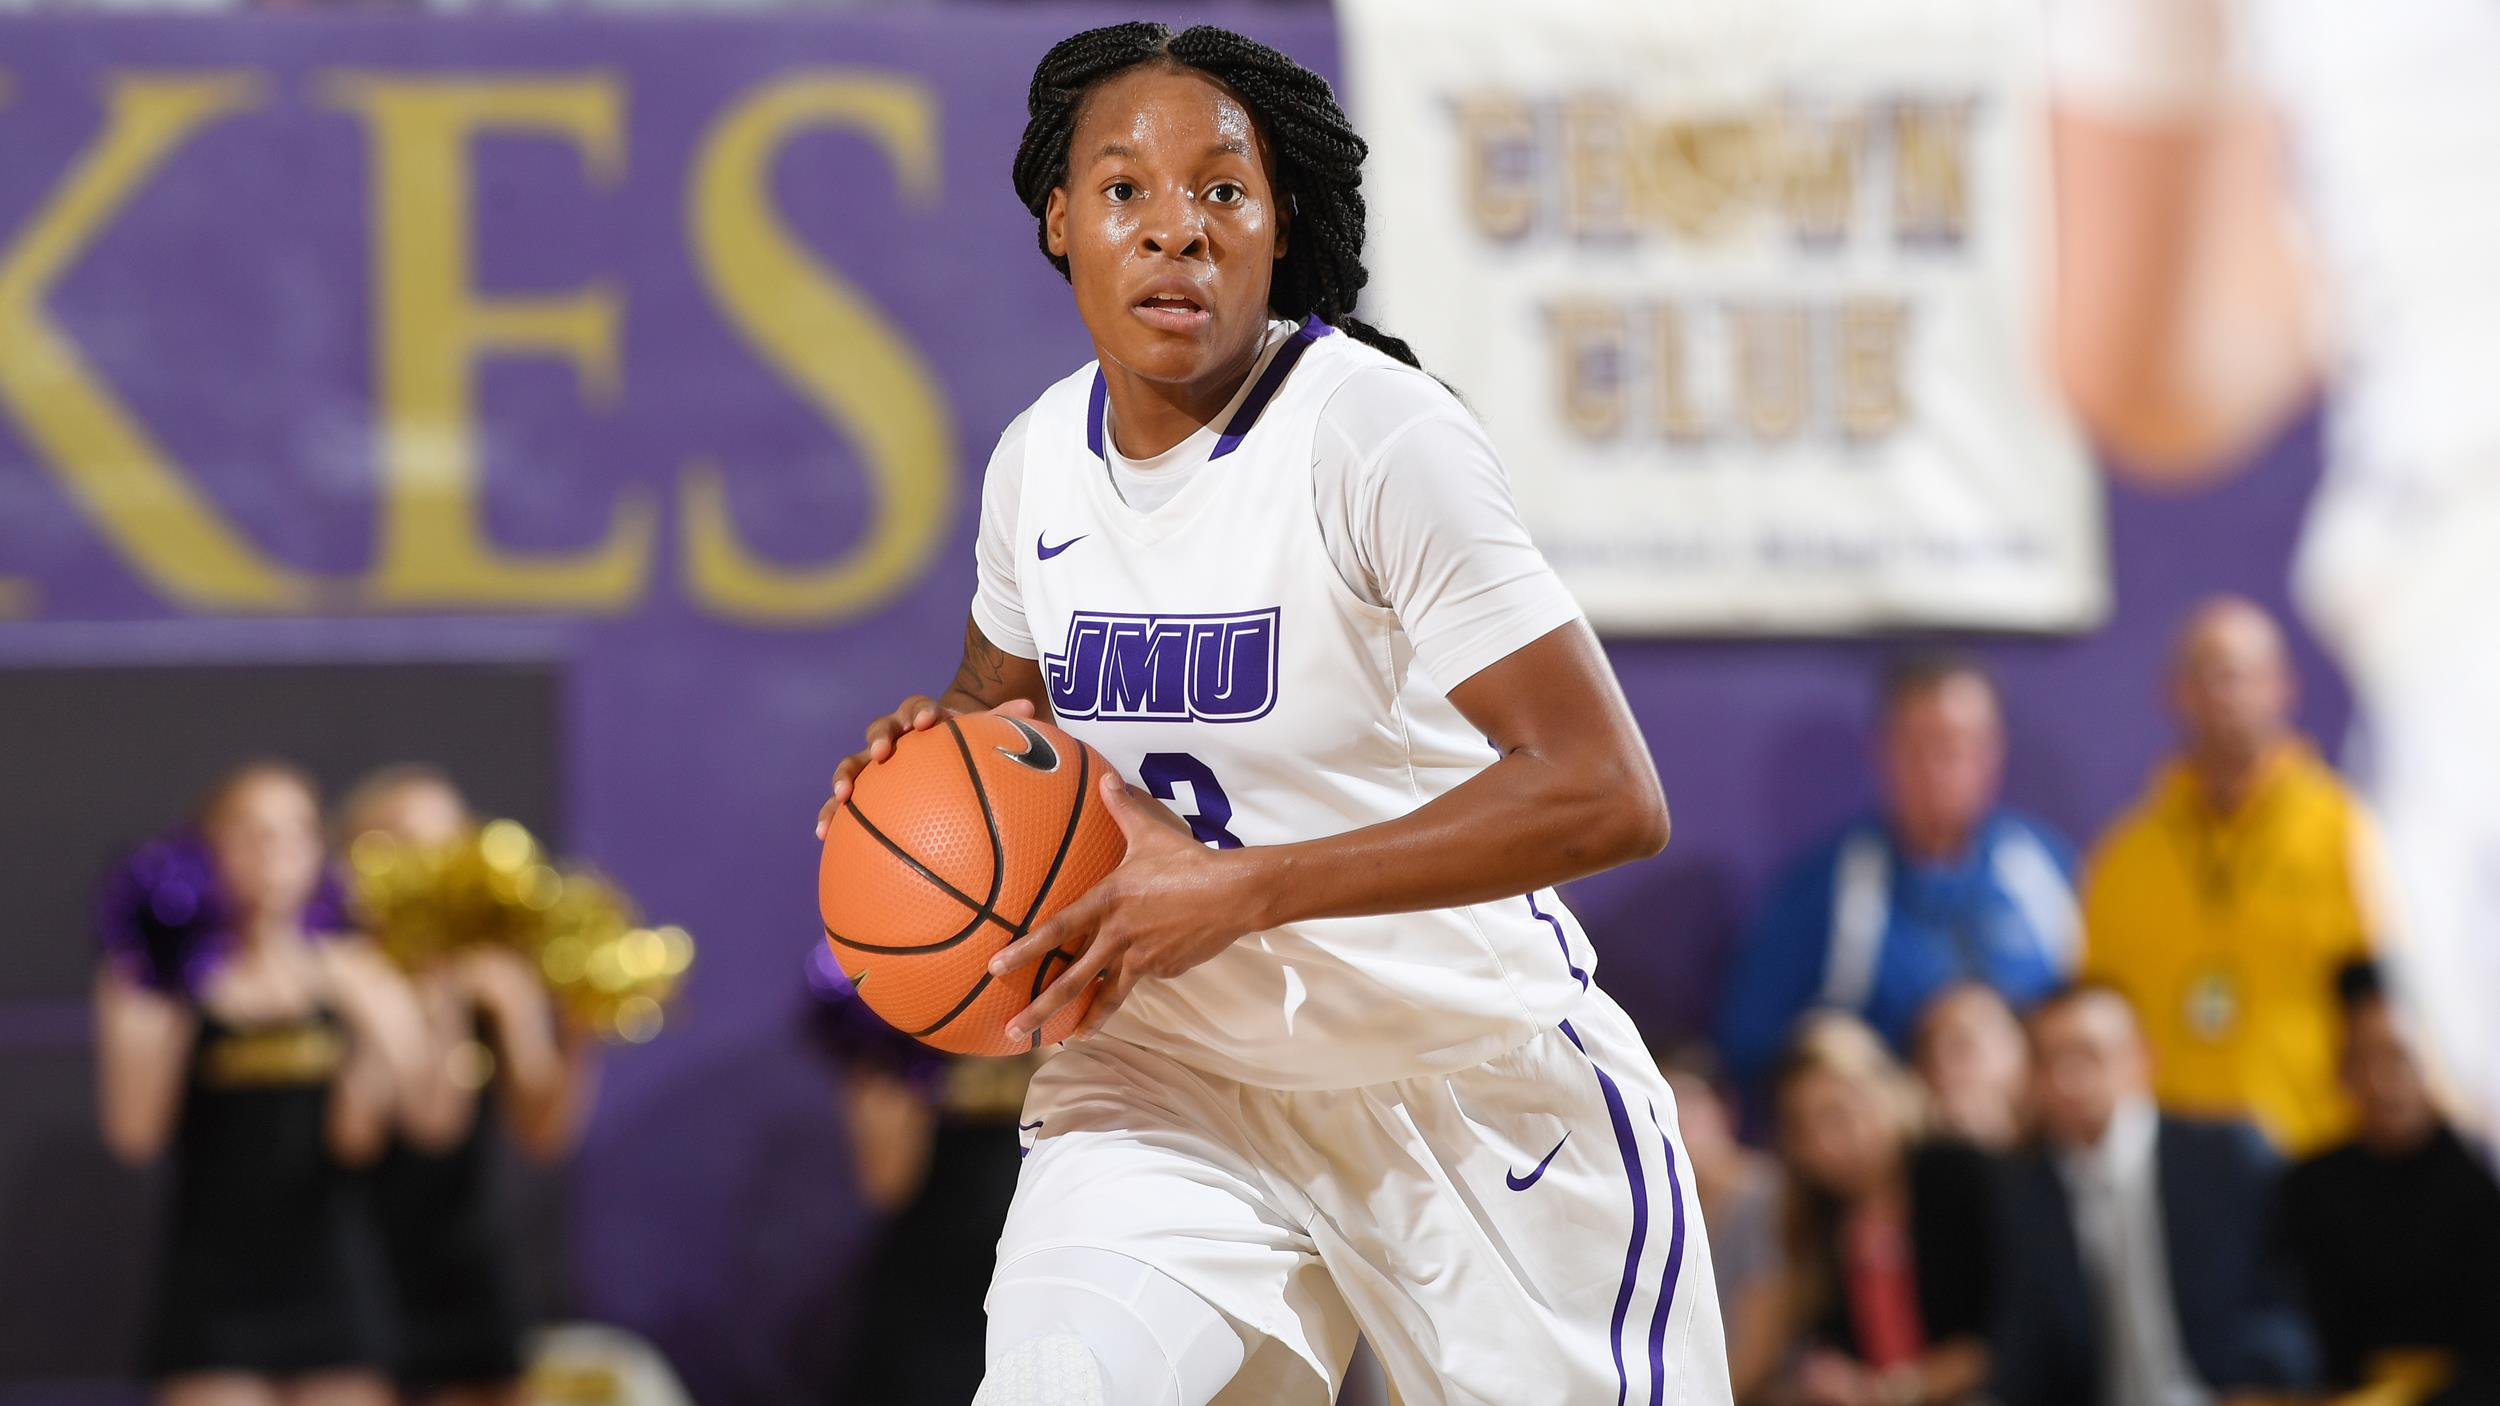 Women's Basketball: Smalls' Spark Earns CAA Player of the Week Honor)